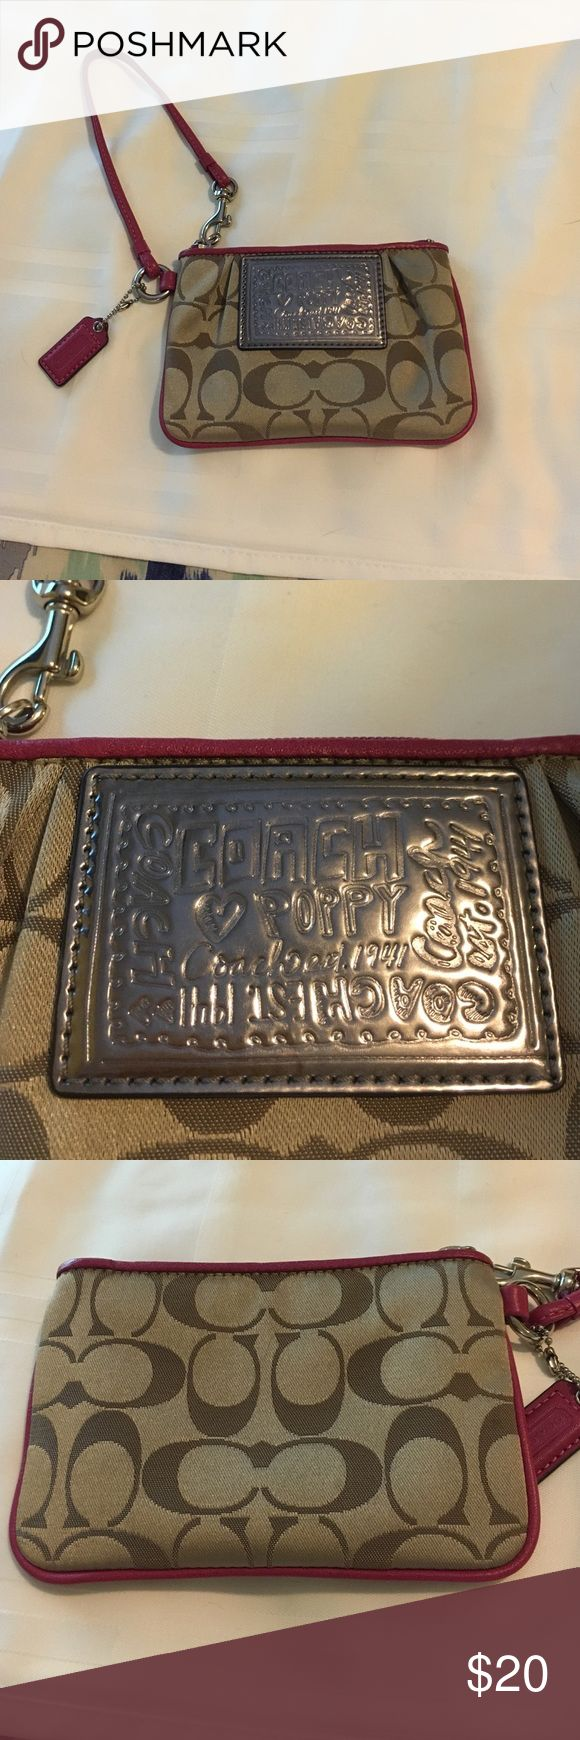 AUTHENTIC Coach Poppy Signature Wristlet Coach khaki and fuschia Wristlet with hang tag and Wristlet strap. Strap has a clip on it so you can attach your Wristlet to a purse! Purchased this at the Coach Store located in the Country Club Plaza about 6 years ago. Excellent condition! Willing to negotiate Coach Bags Clutches & Wristlets